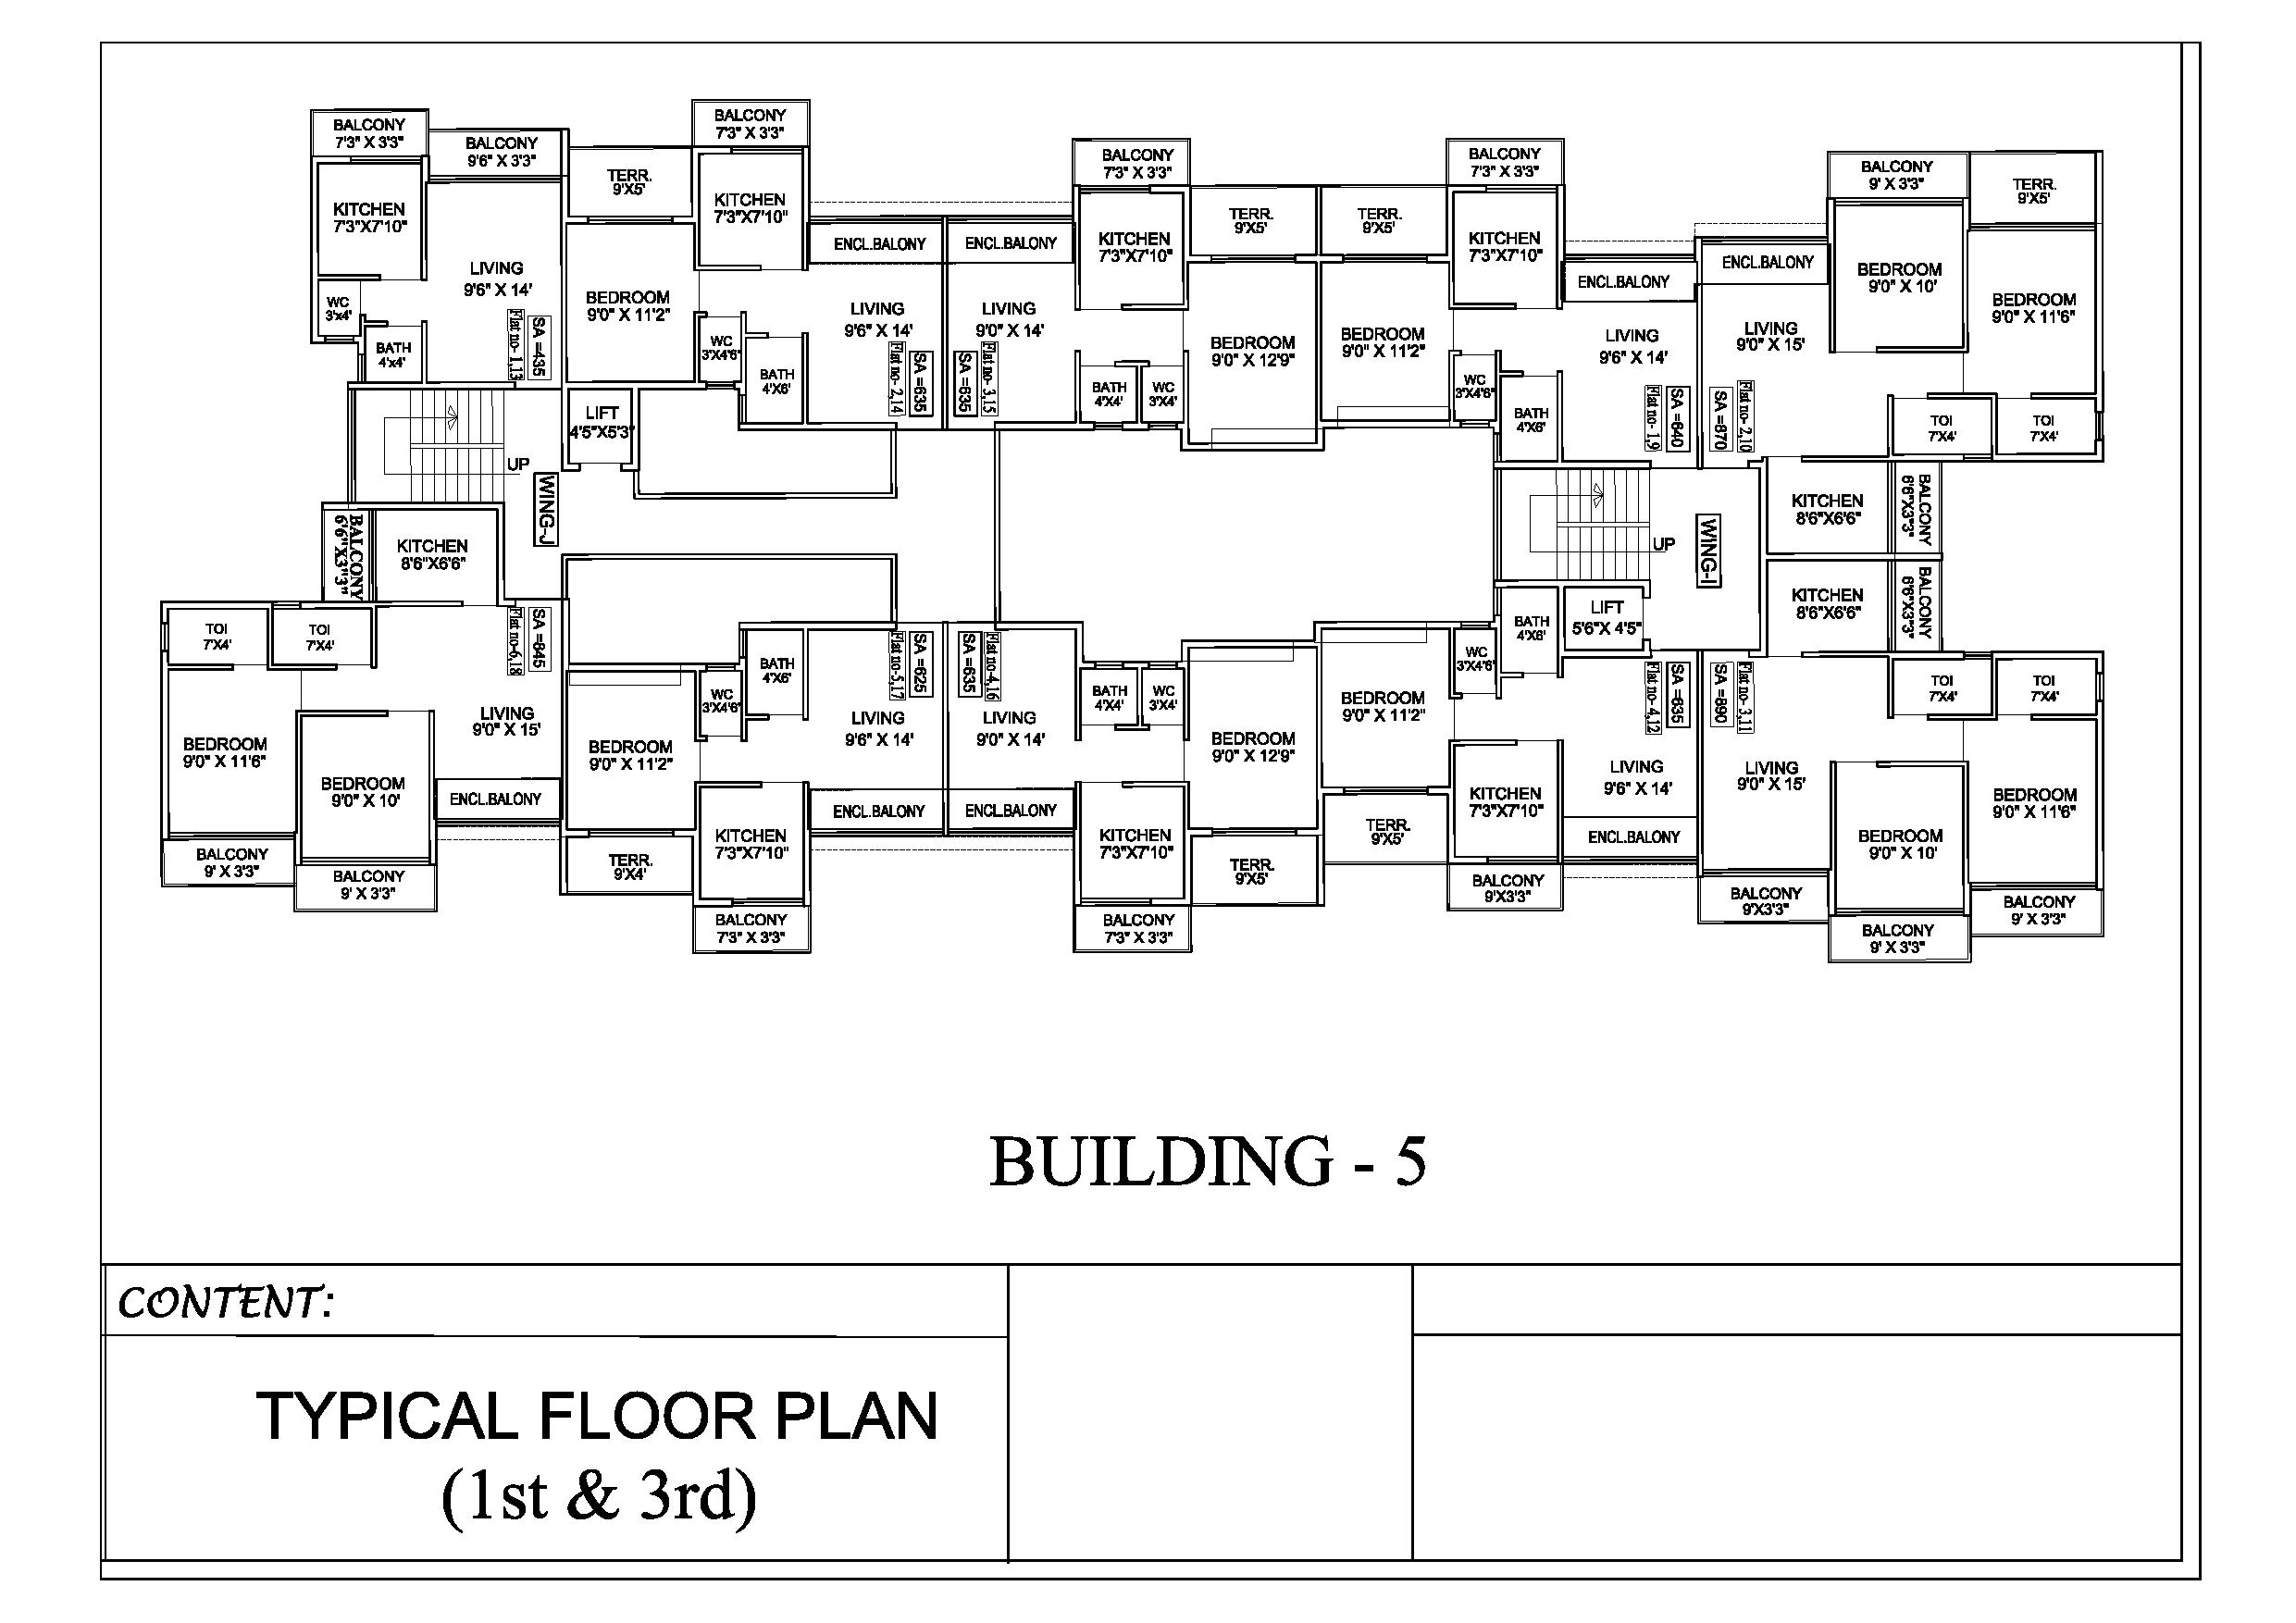 Typical Floor Plan A 1-3 Bldg. 5.jpg